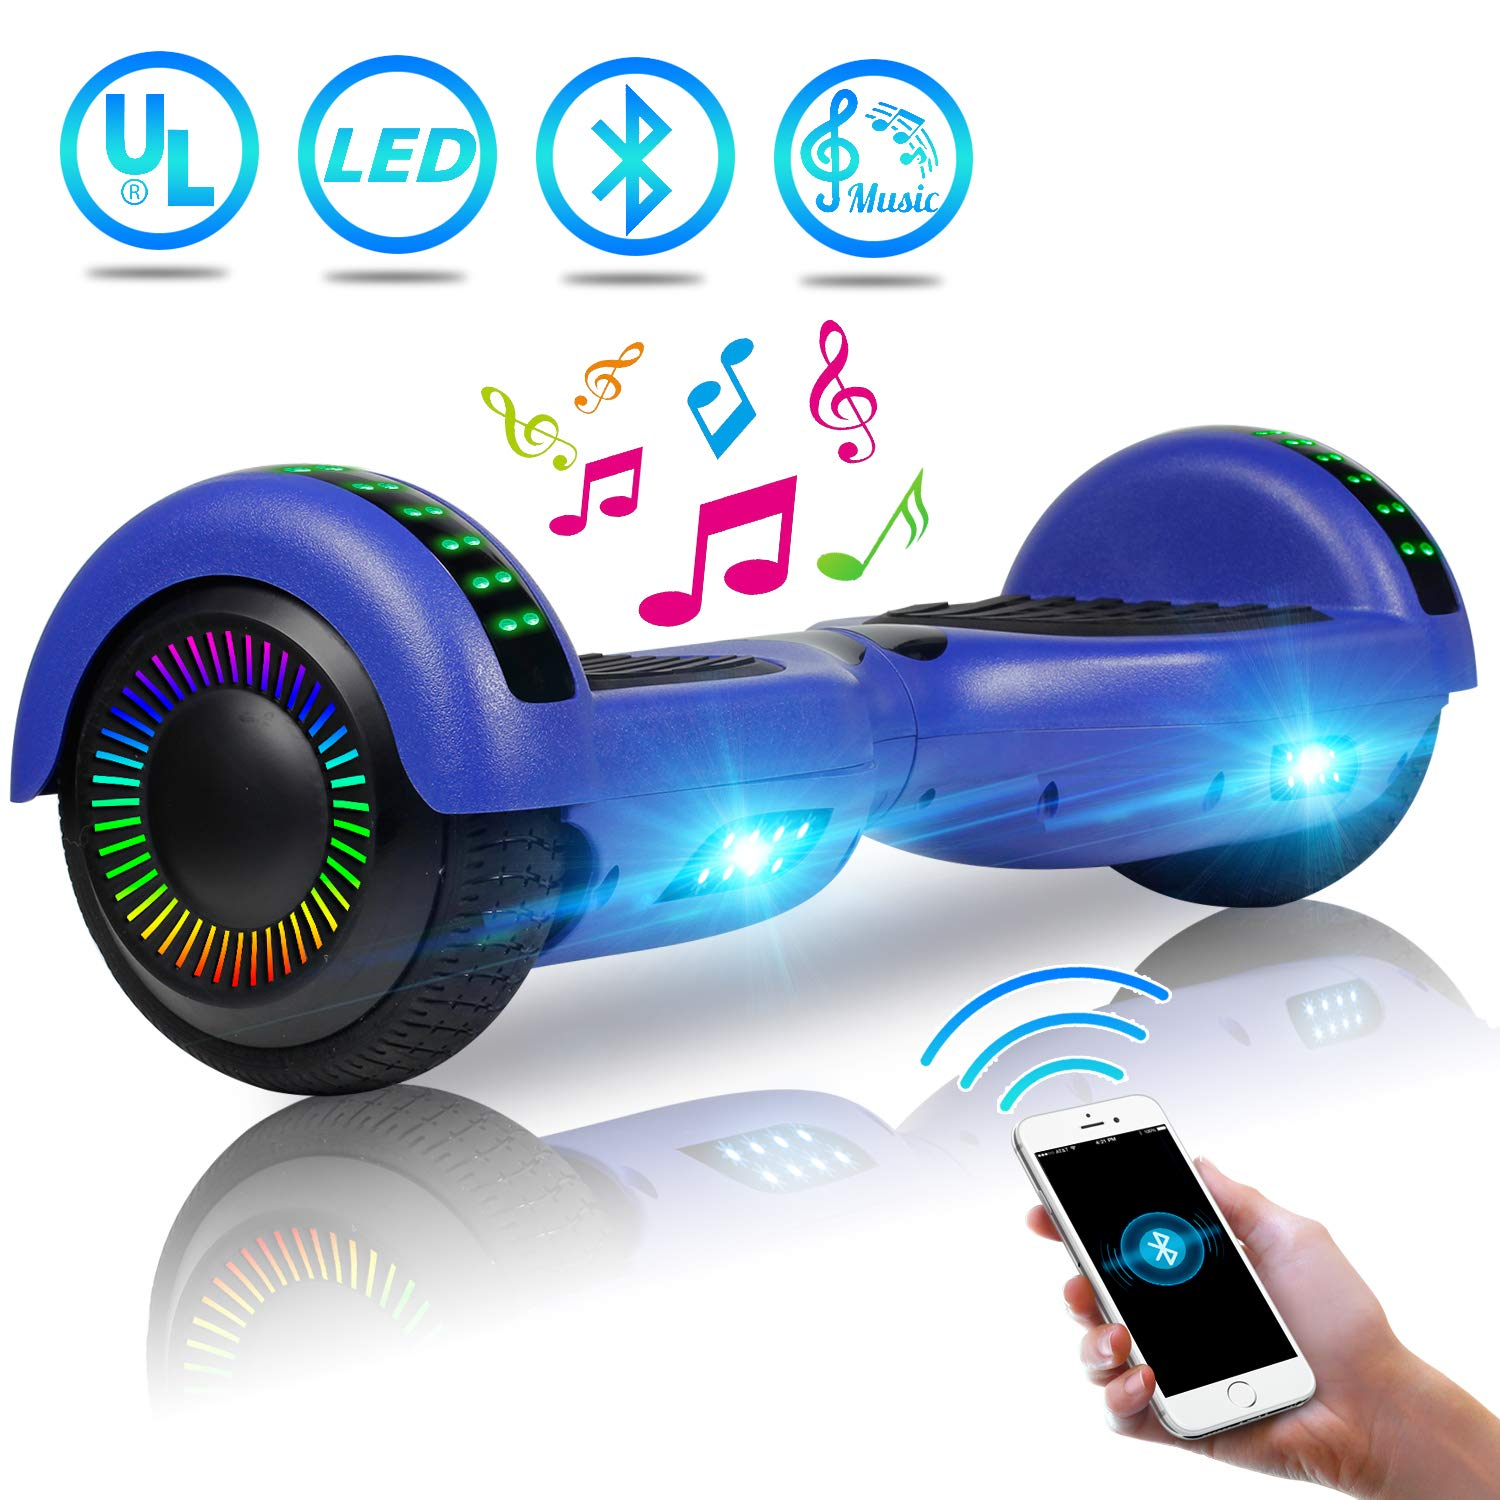 UNI-SUN 6.5'' Hoverboard for Kids, Two Wheel Electric Scooter, Self Balancing Hoverboard with Bluetooth and LED Lights for Adults, UL 2272 Certified Hover Board(Ultimate Blue)